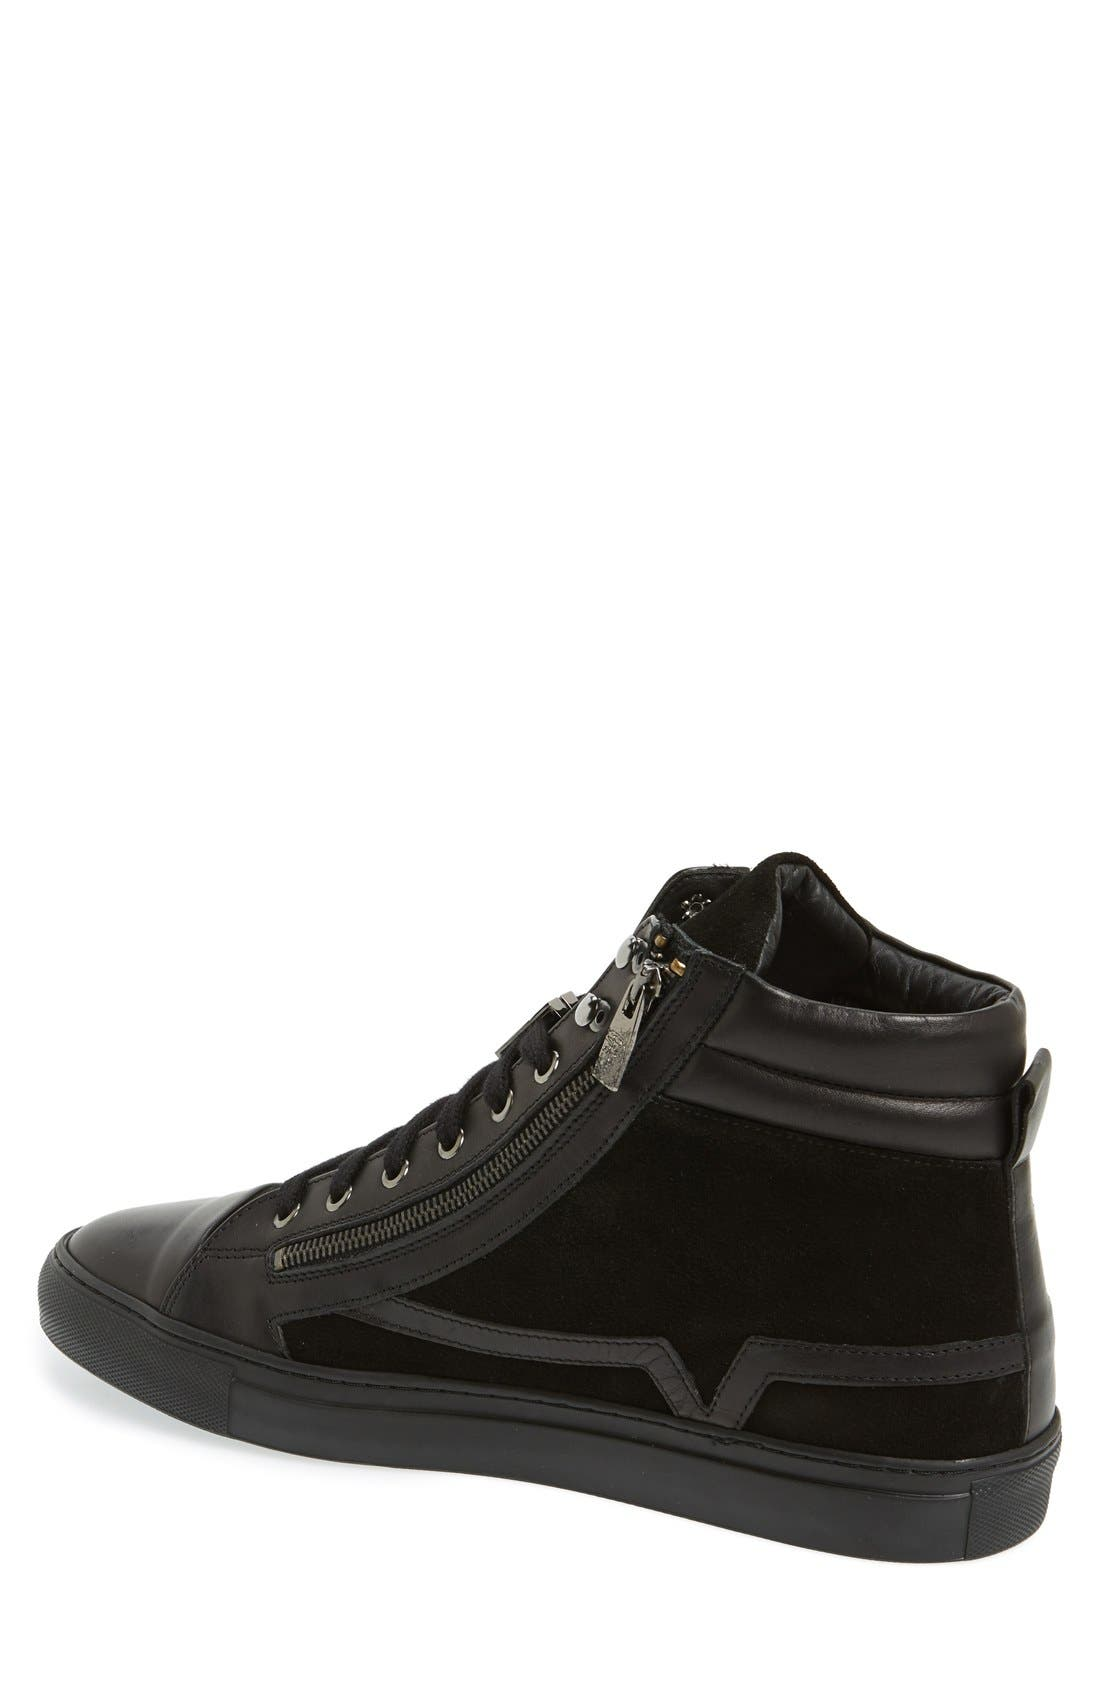 Alternate Image 2  - Versace Collection Suede & Leather High Top Sneaker (Men)